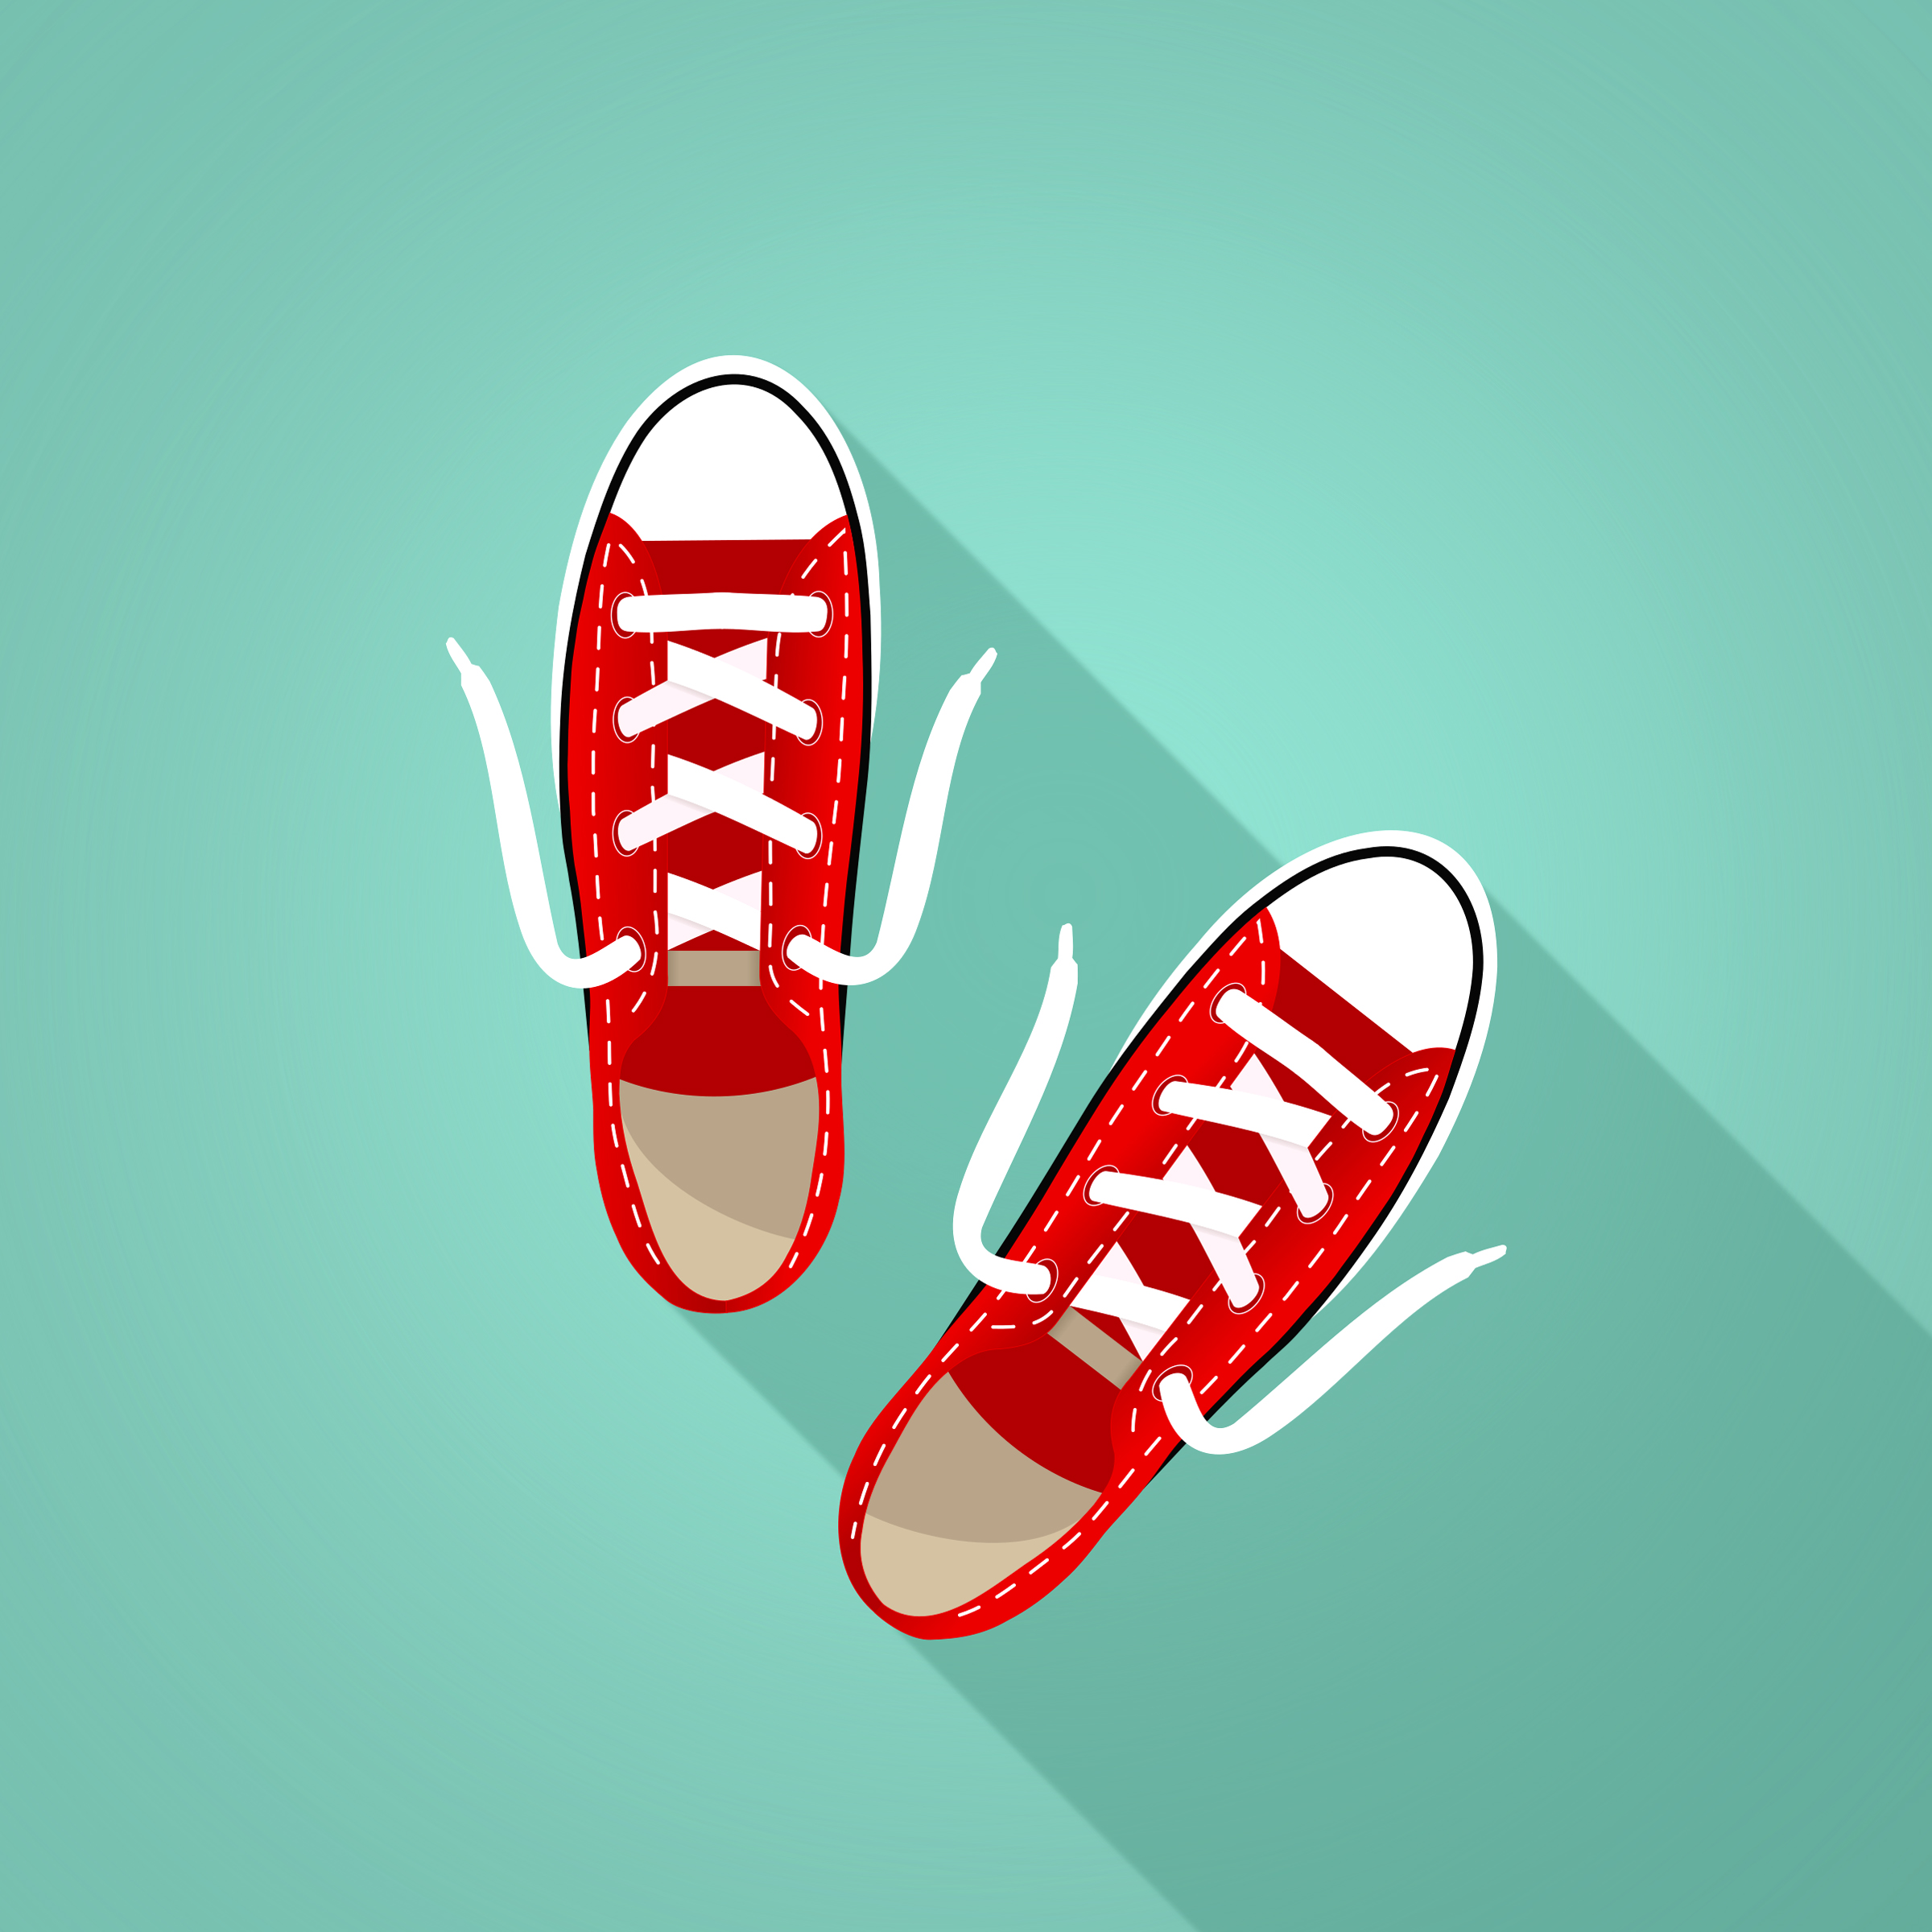 Red sneakers on turquoise background photo